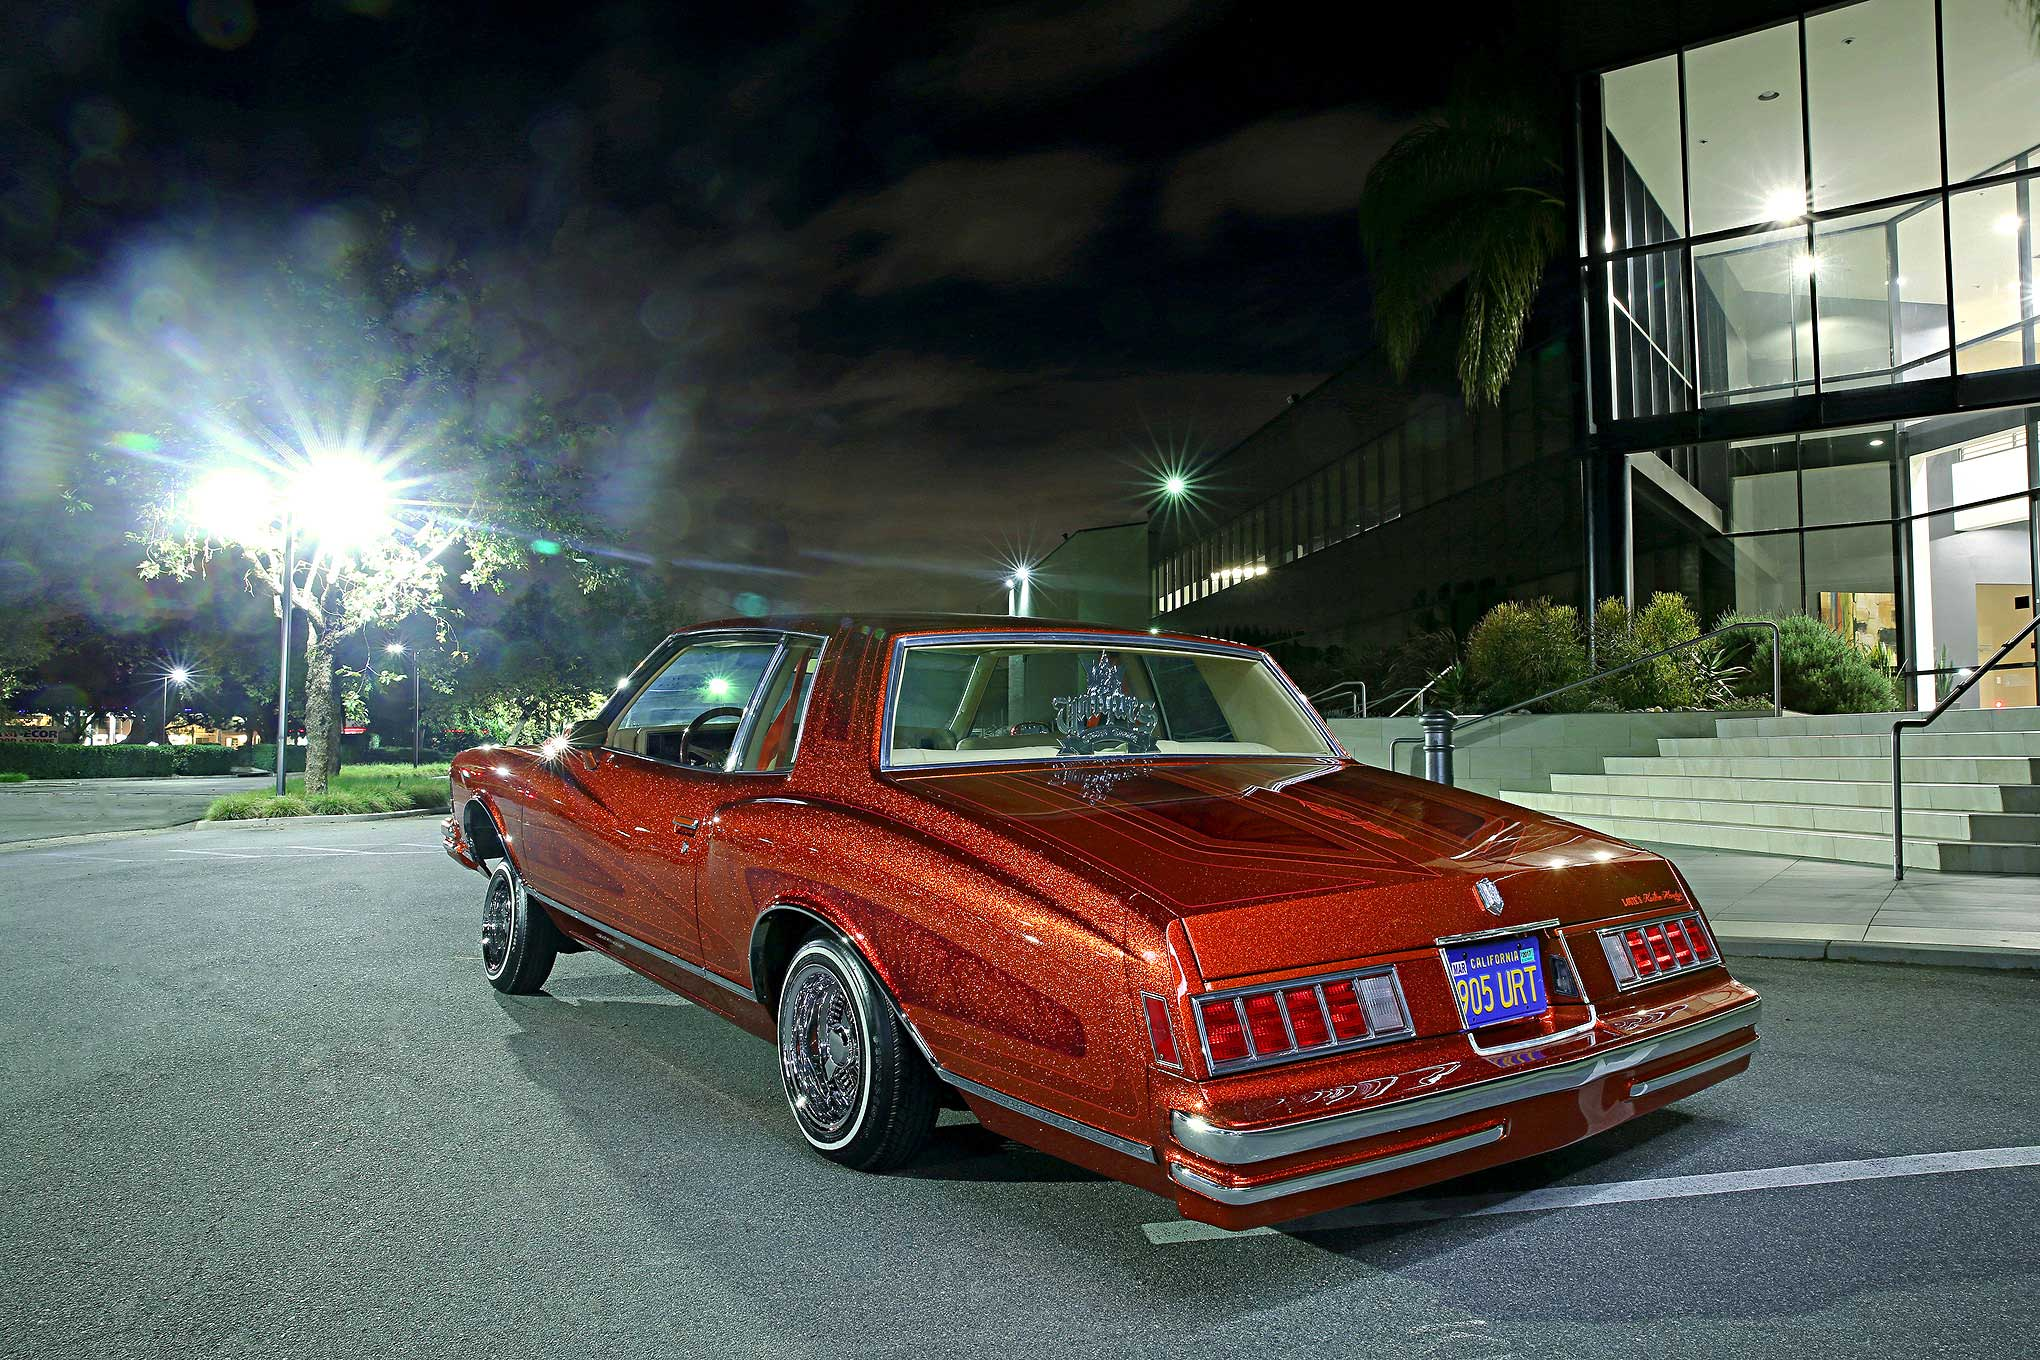 Chevy Monte Carlo 2017 >> Jesse Carbajal's 1978 Chevy Monte Carlo - A Sunset Dream